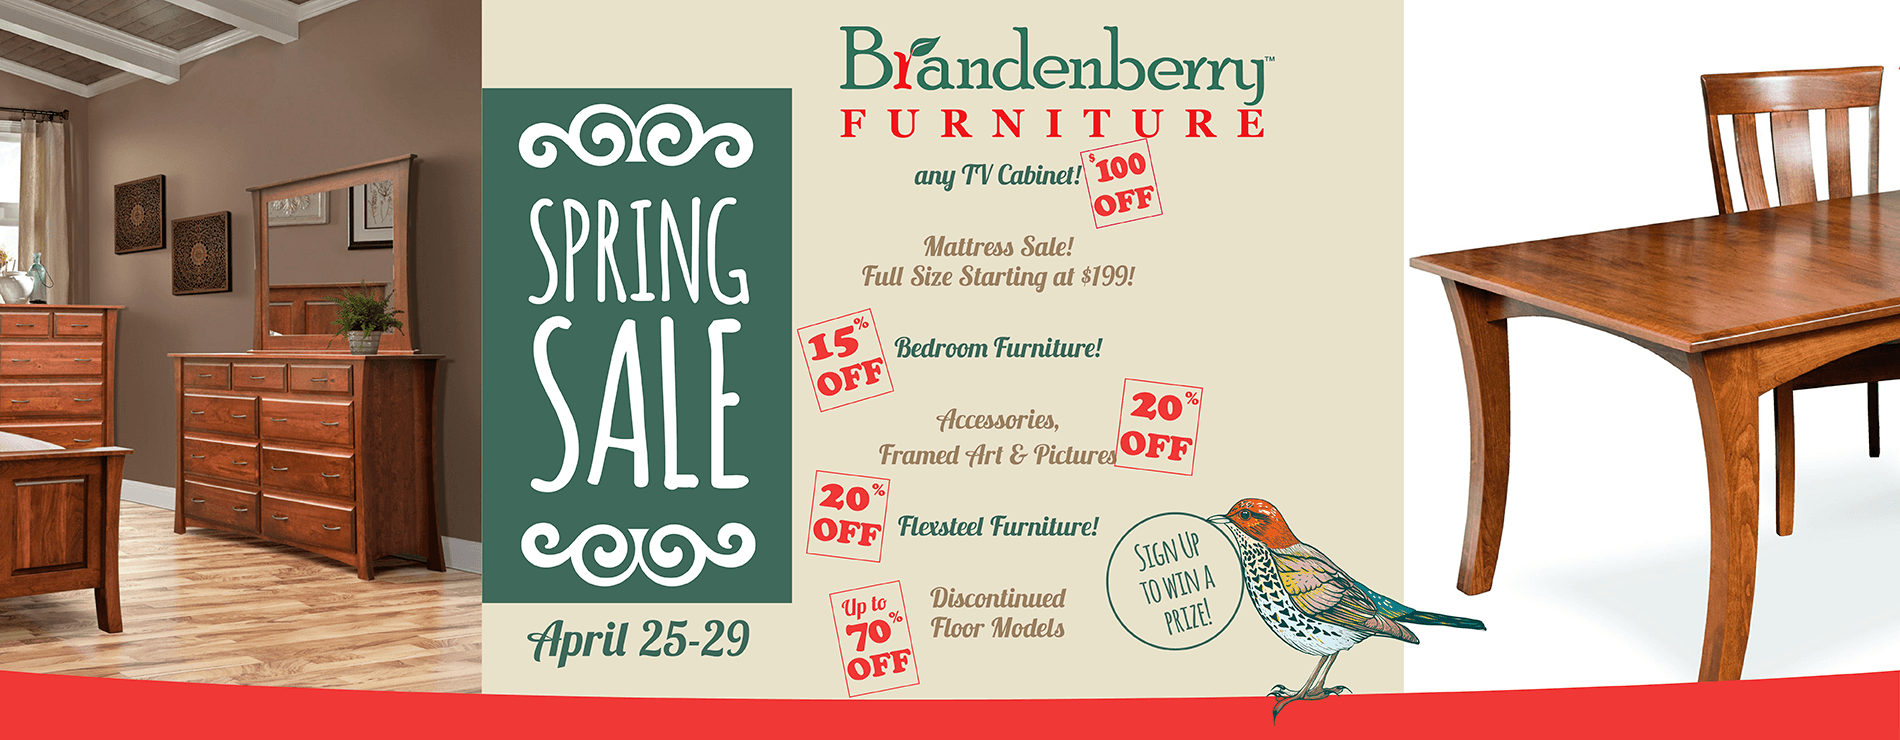 Brandenberry Spring Amish Furniture Sale 2019